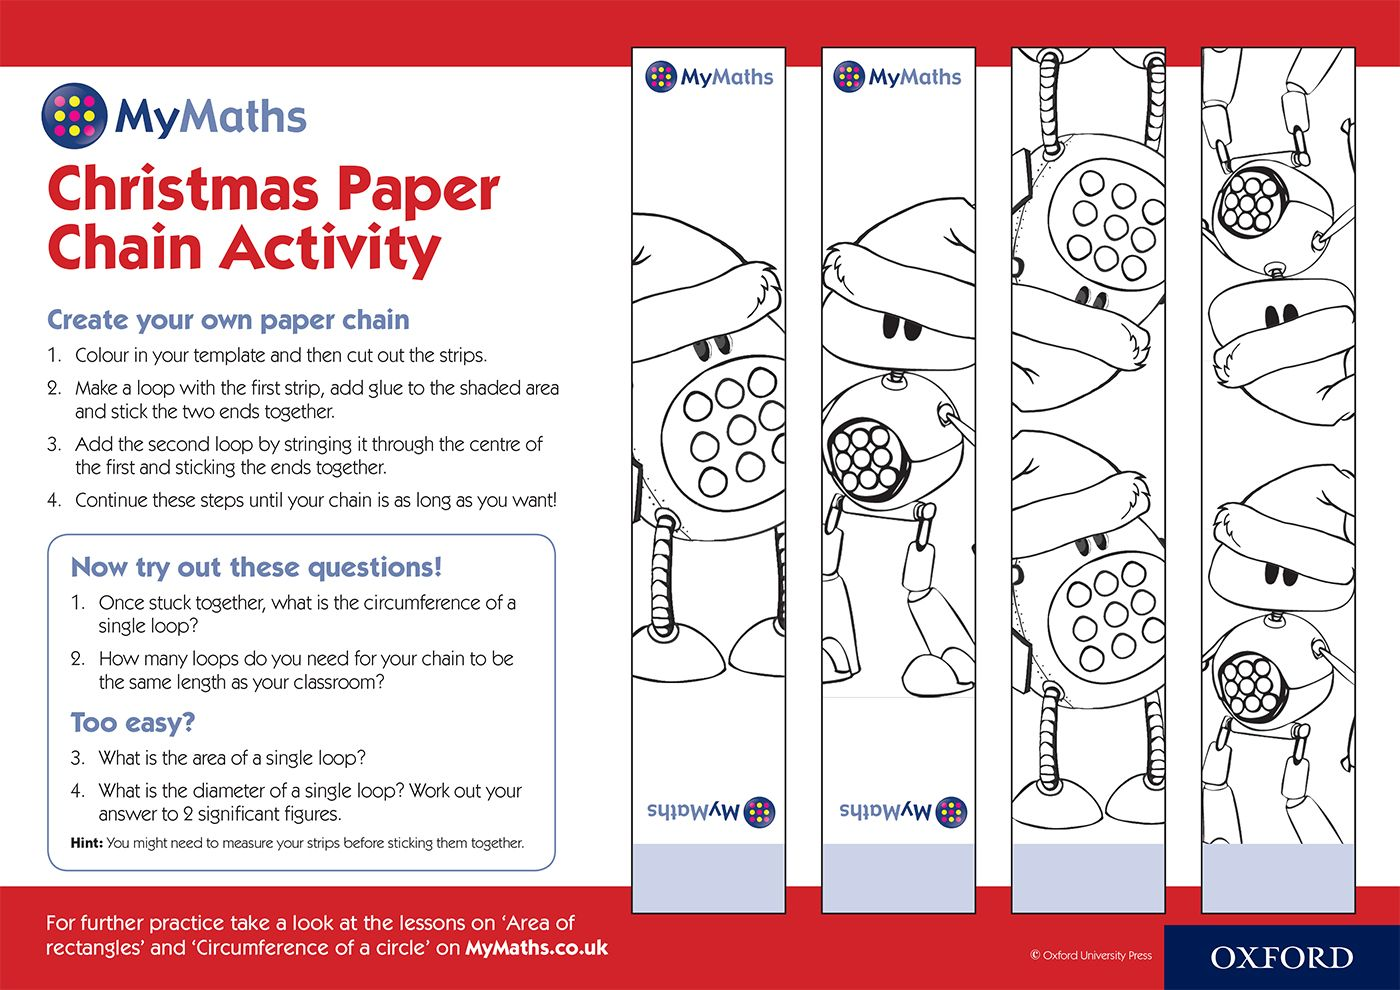 Mymaths Christmas Paper Chain